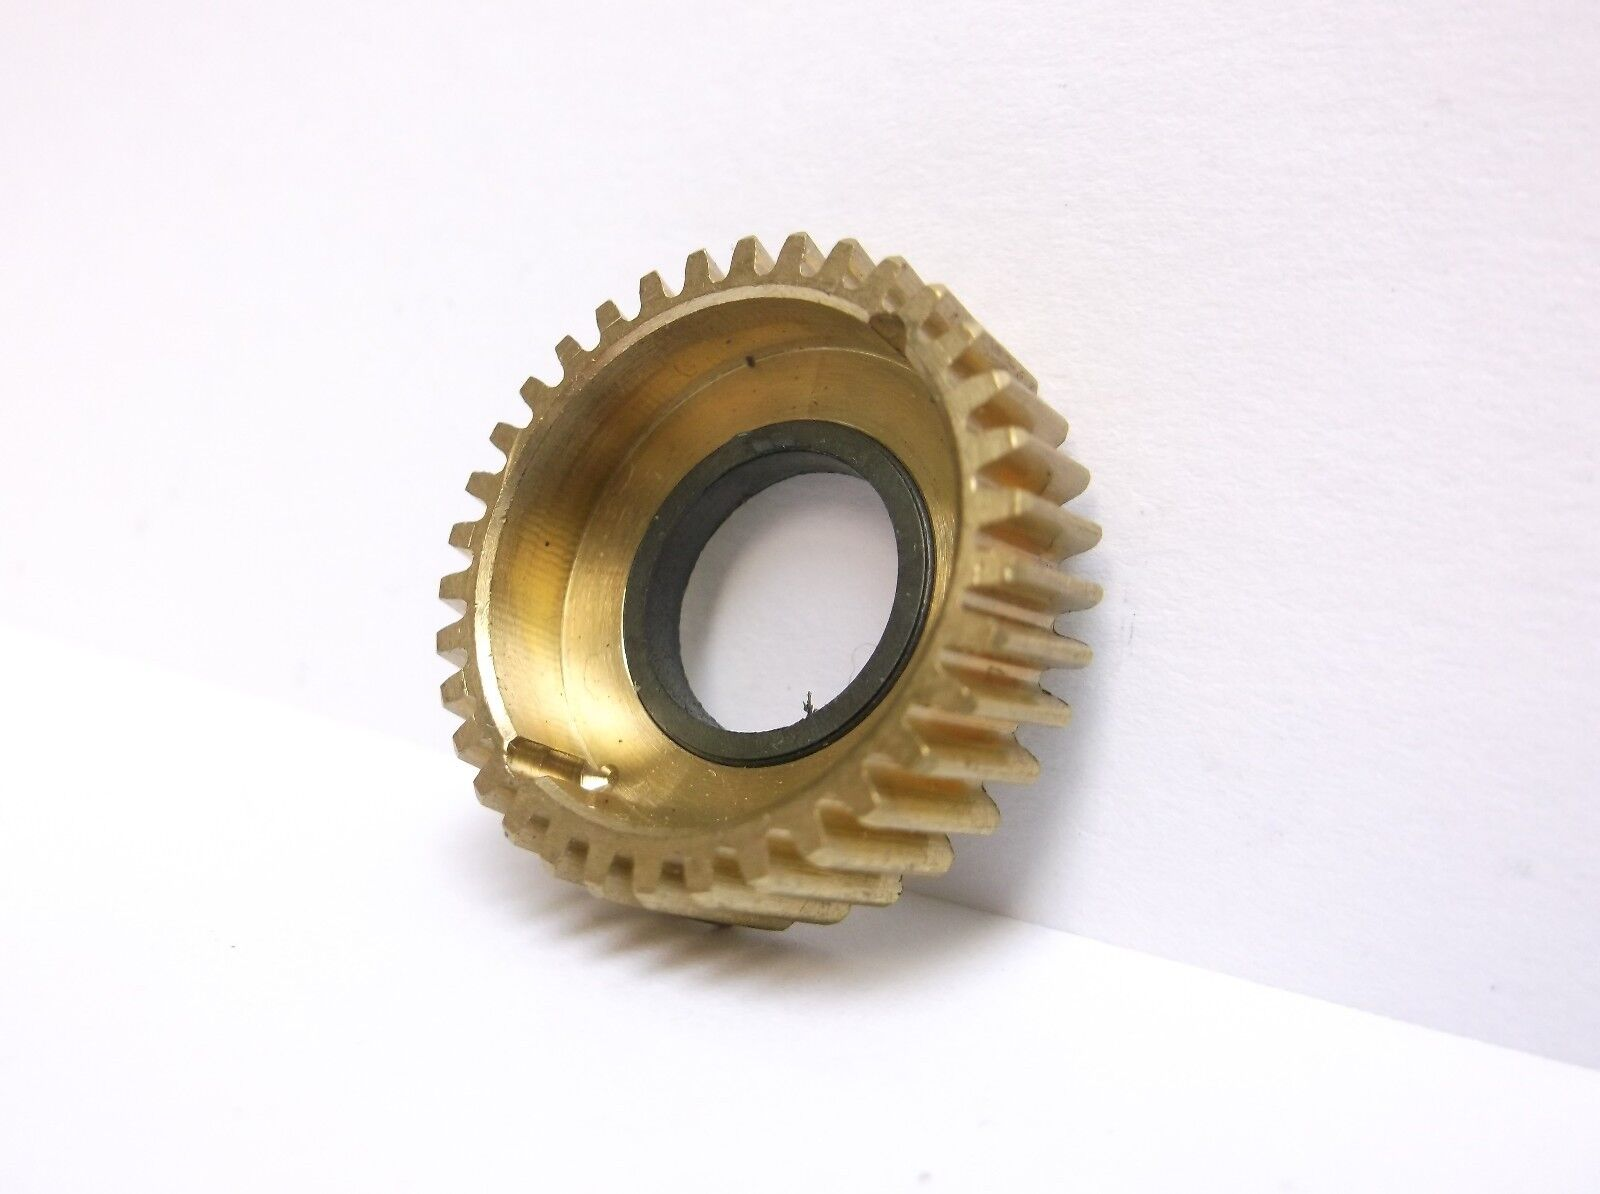 1 New Old Stock Penn 9M 109M Fishing Reel Brass Main Drive Gear 5-109